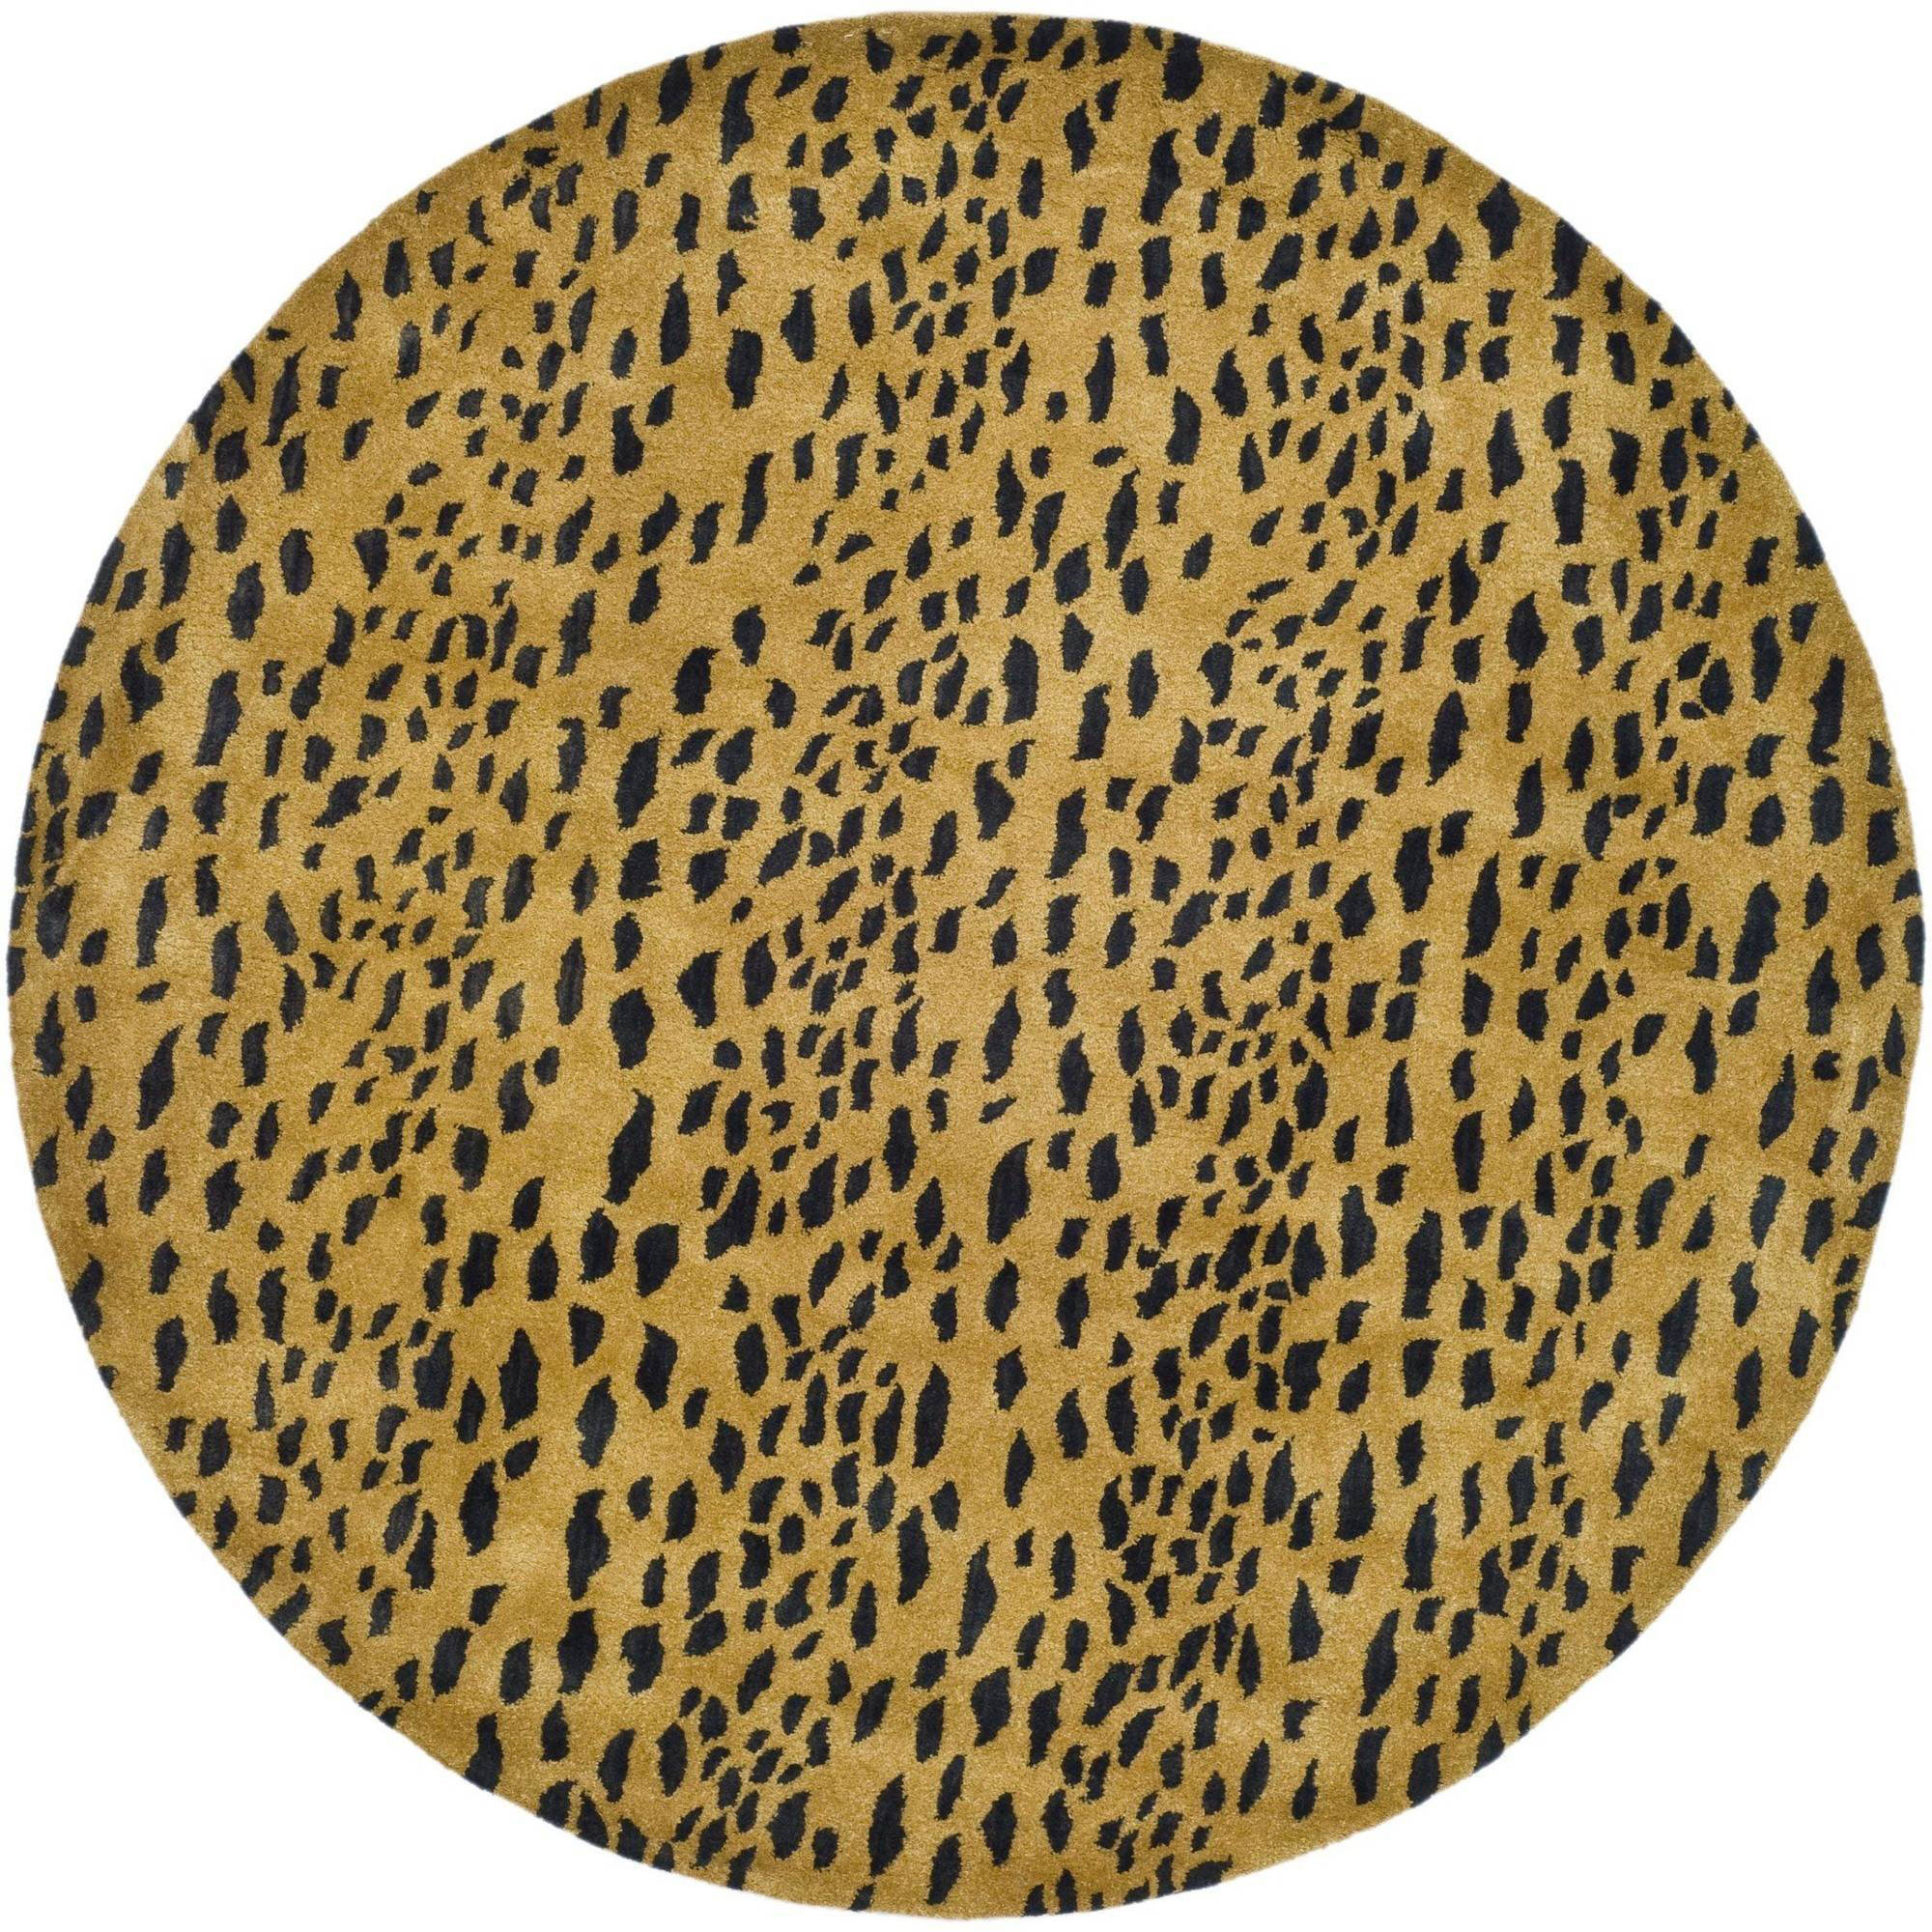 Safavieh Soho Ardi Wool Round Area Rug, Beige/Brown, 6'